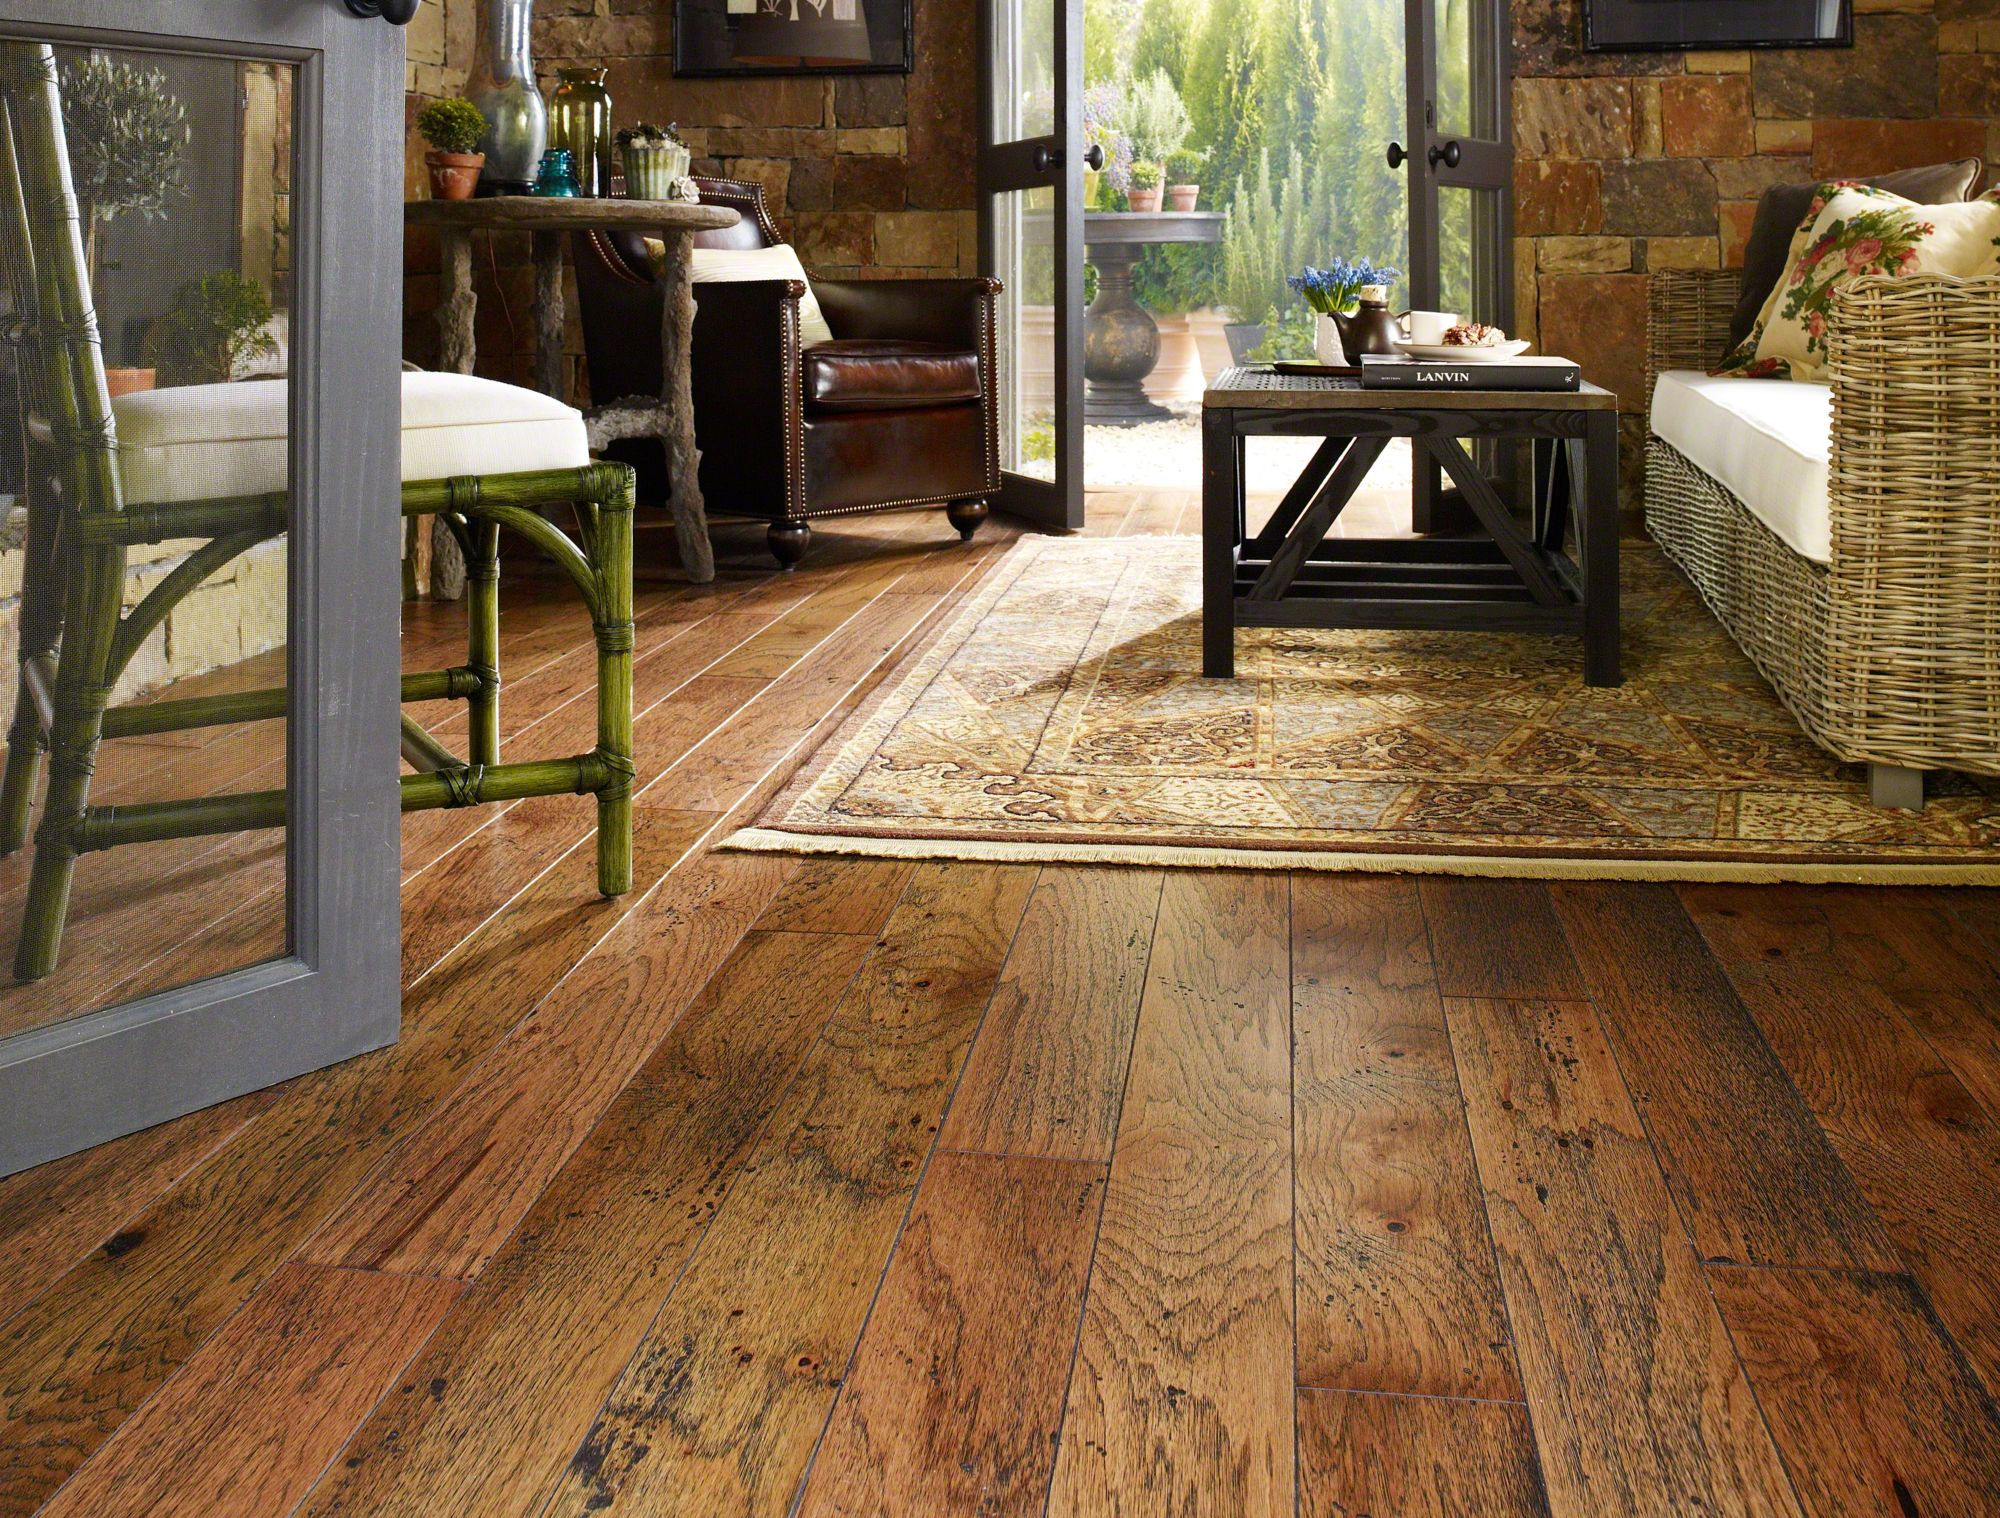 Selecting suitable shaw hardwood flooring